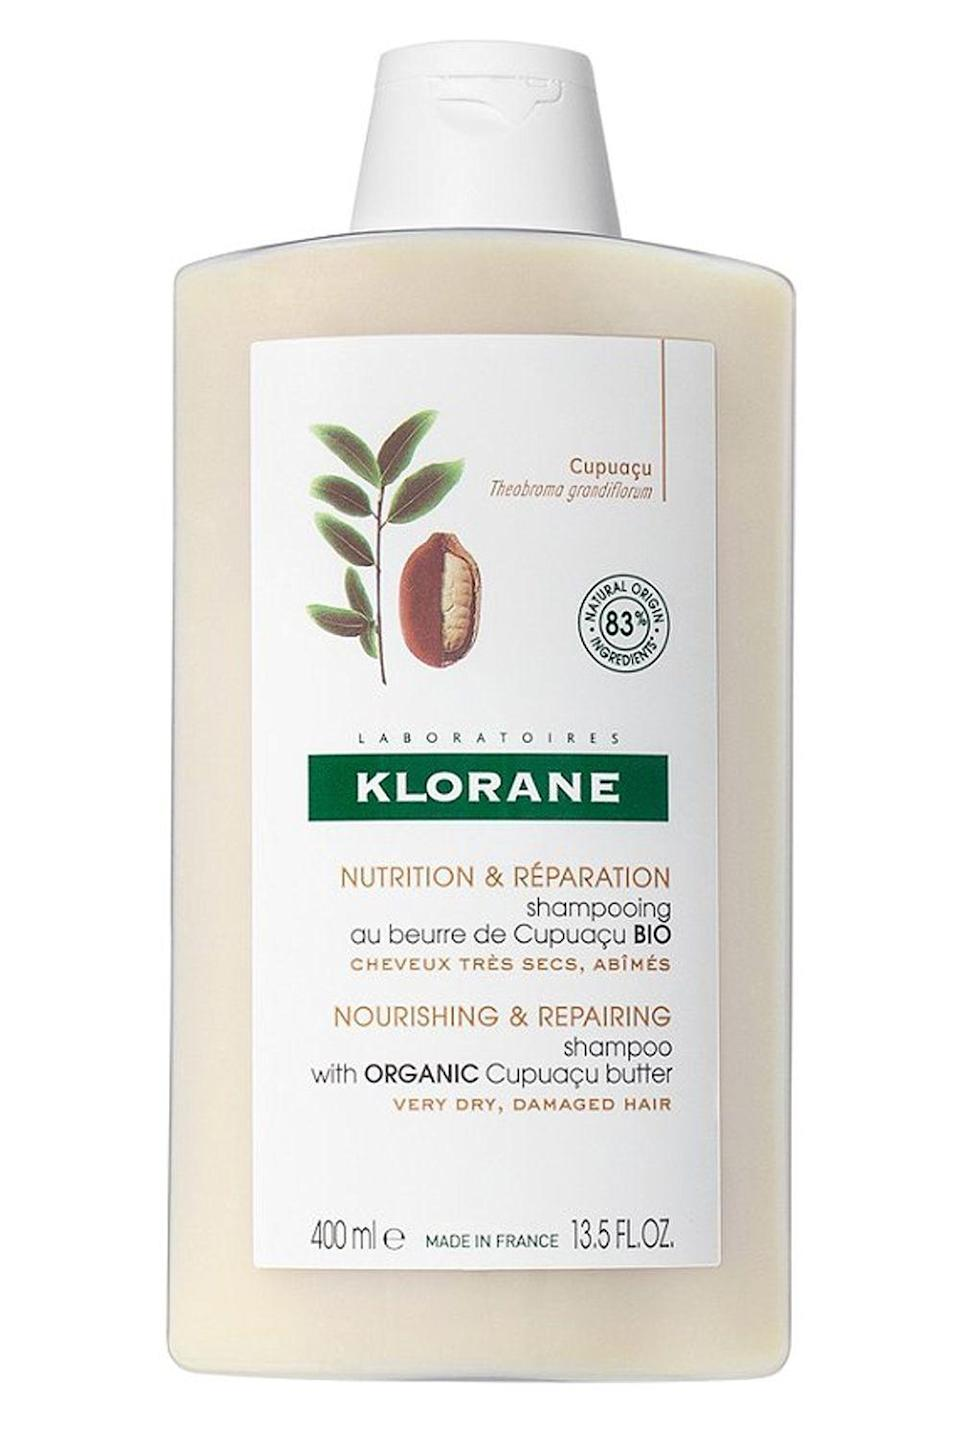 "<p><strong>Klorane</strong></p><p>ulta.com</p><p><strong>$20.00</strong></p><p><a href=""https://go.redirectingat.com?id=74968X1596630&url=https%3A%2F%2Fwww.ulta.com%2Fnourishing-repairing-shampoo-with-cupuacu-butter%3FproductId%3Dpimprod2015310&sref=https%3A%2F%2Fwww.cosmopolitan.com%2Fstyle-beauty%2Fbeauty%2Fg22740377%2Forganic-shampoo%2F"" rel=""nofollow noopener"" target=""_blank"" data-ylk=""slk:Shop Now"" class=""link rapid-noclick-resp"">Shop Now</a></p><p>If your hair feels like freaking straw, this organic shampoo for <a href=""https://www.cosmopolitan.com/style-beauty/beauty/a29873251/how-to-fix-dry-hair-tips/"" rel=""nofollow noopener"" target=""_blank"" data-ylk=""slk:dry hair"" class=""link rapid-noclick-resp"">dry hair</a> is about to be your new go-to on wash day. Suds up with the rich and creamy formula—it <strong>contains moisturizing and nourishing cupuacu butter</strong>—to transform your frizzy, dry-as-hell strands into head of super soft hair.</p>"